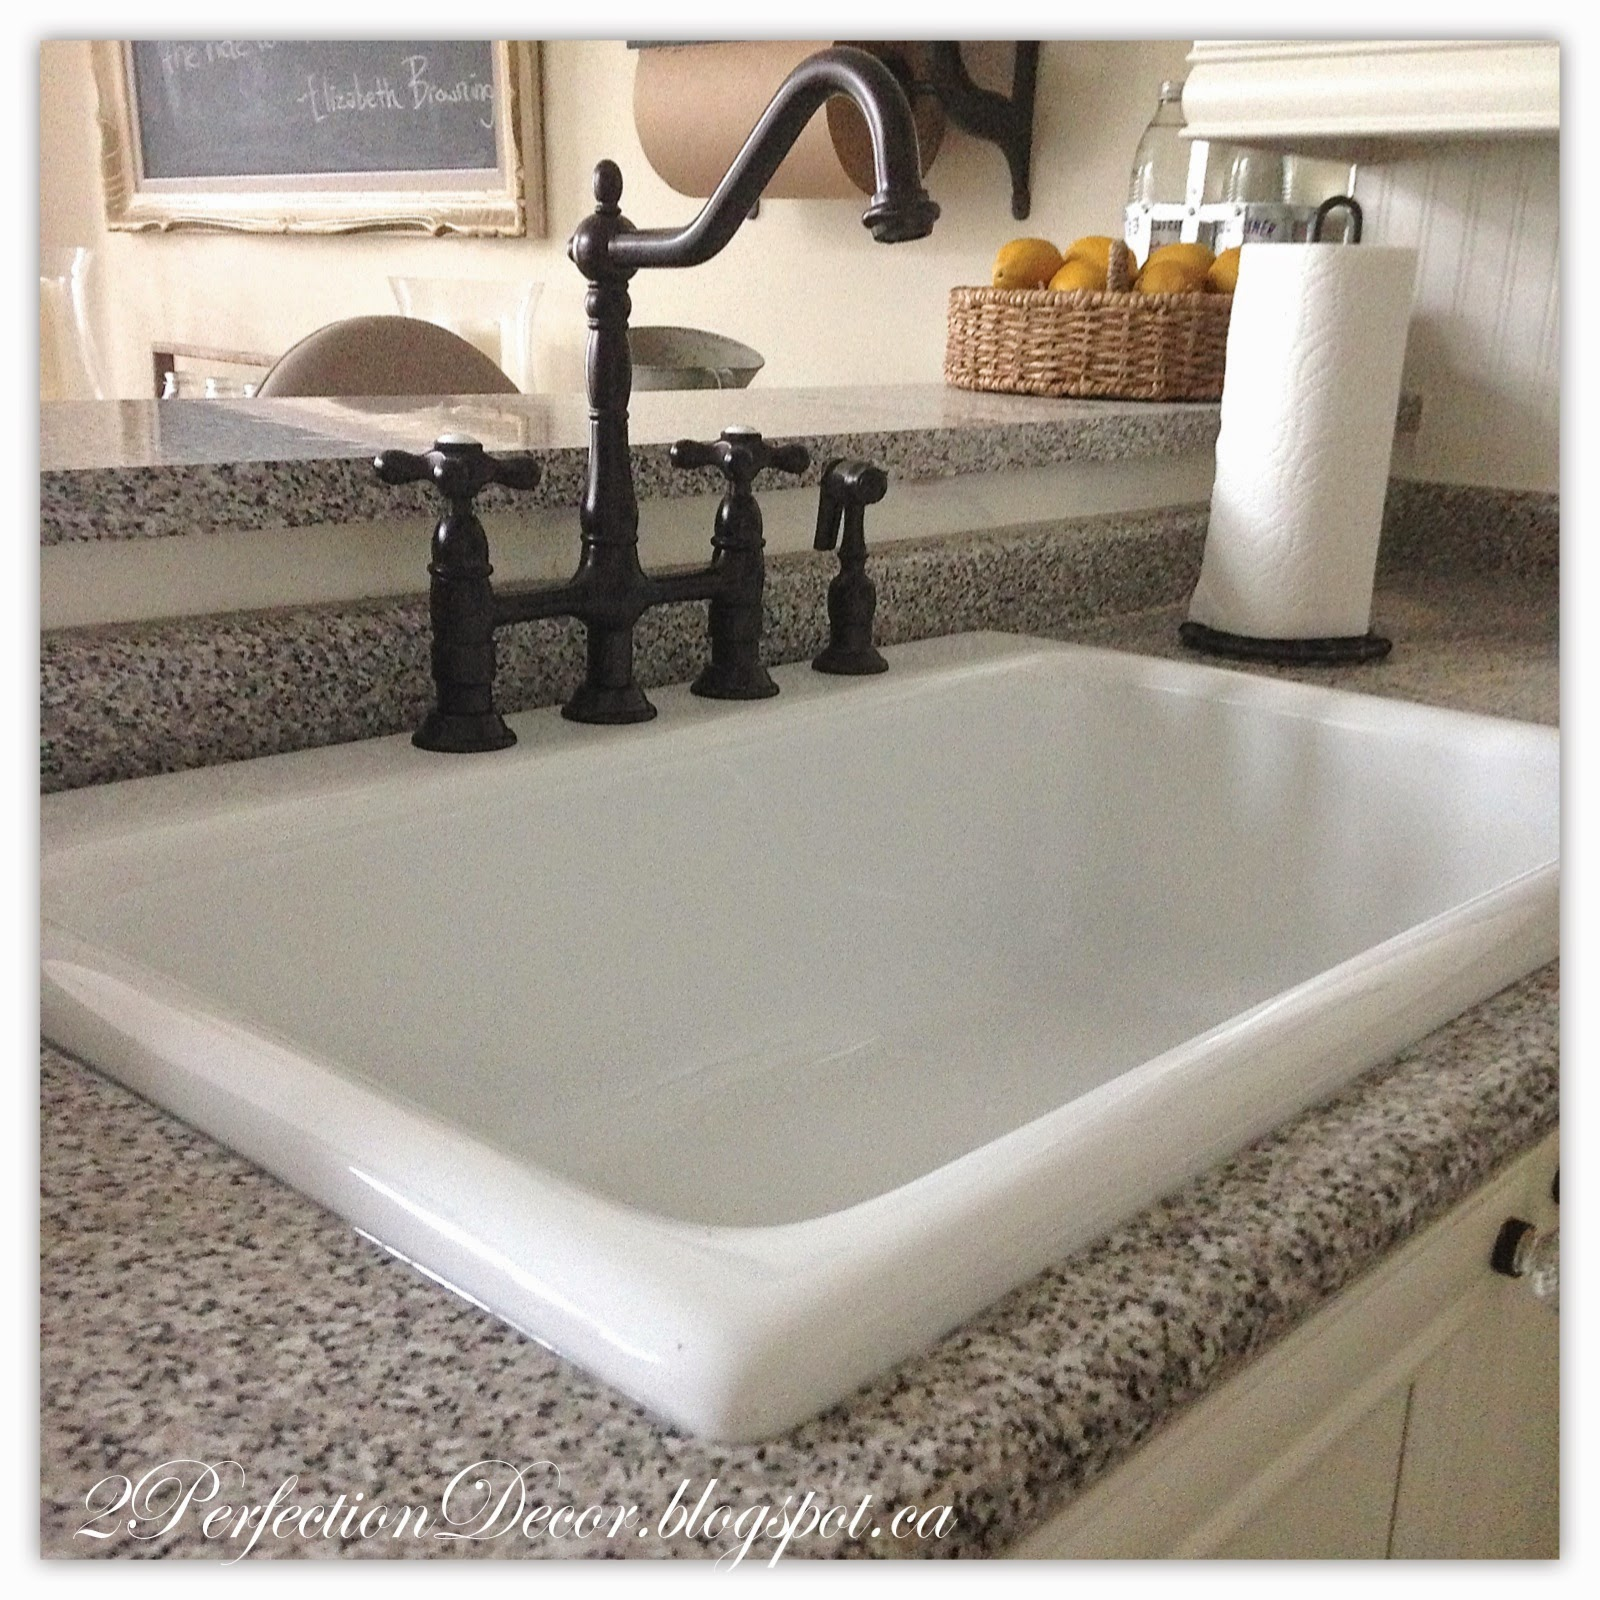 2Perfection Decor: New Farmhouse Kitchen Sink & Faucet